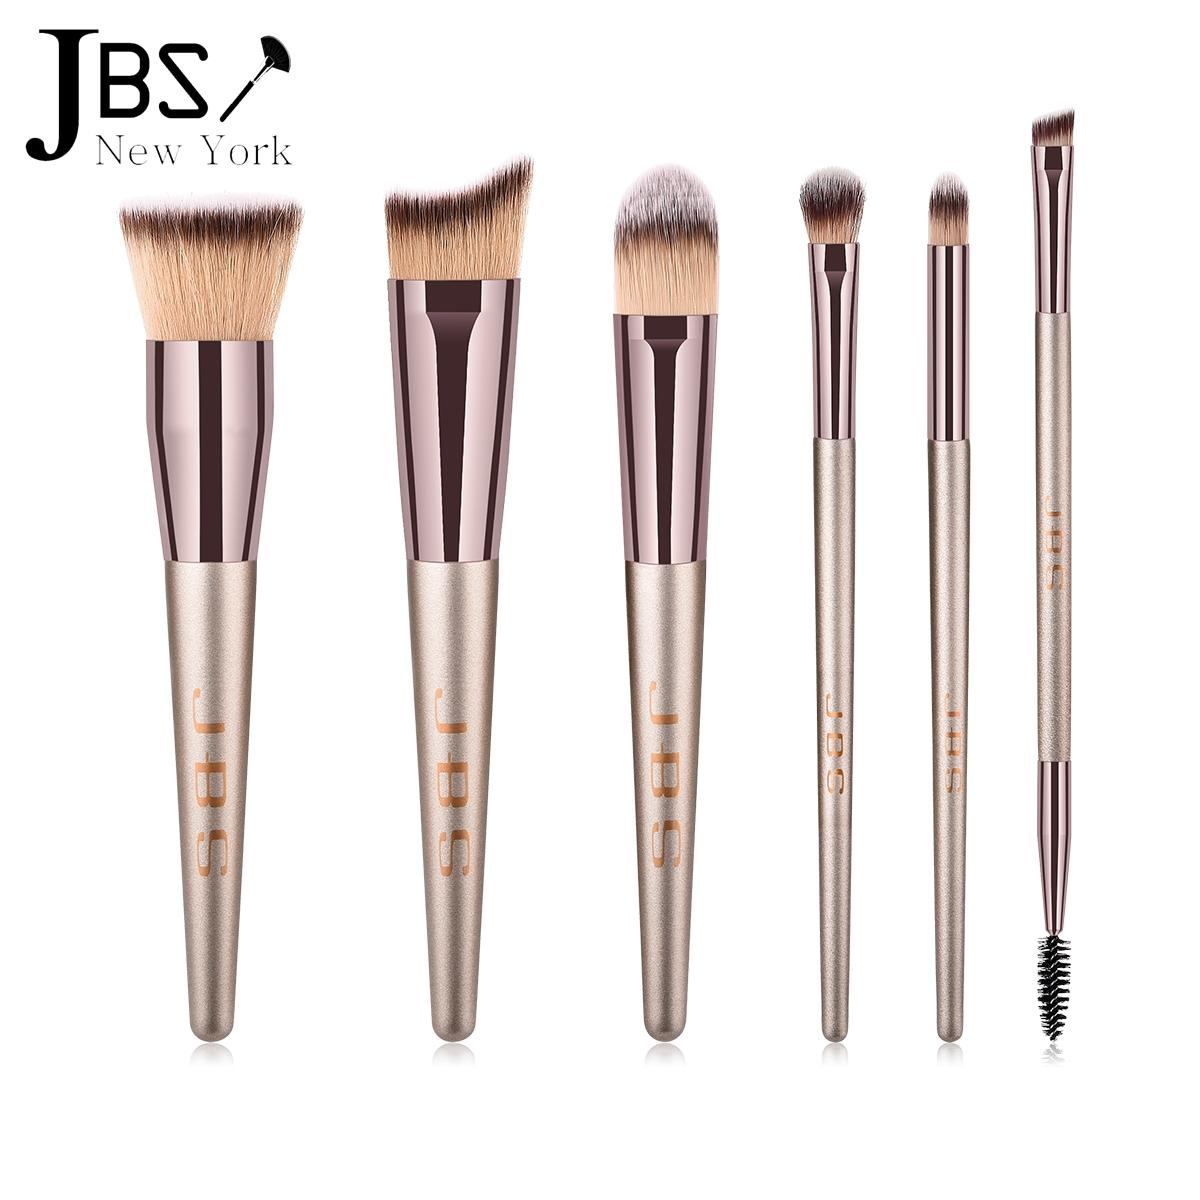 JBS New York Kuas Makeup Brush 6 Set - Make Up Set / K069